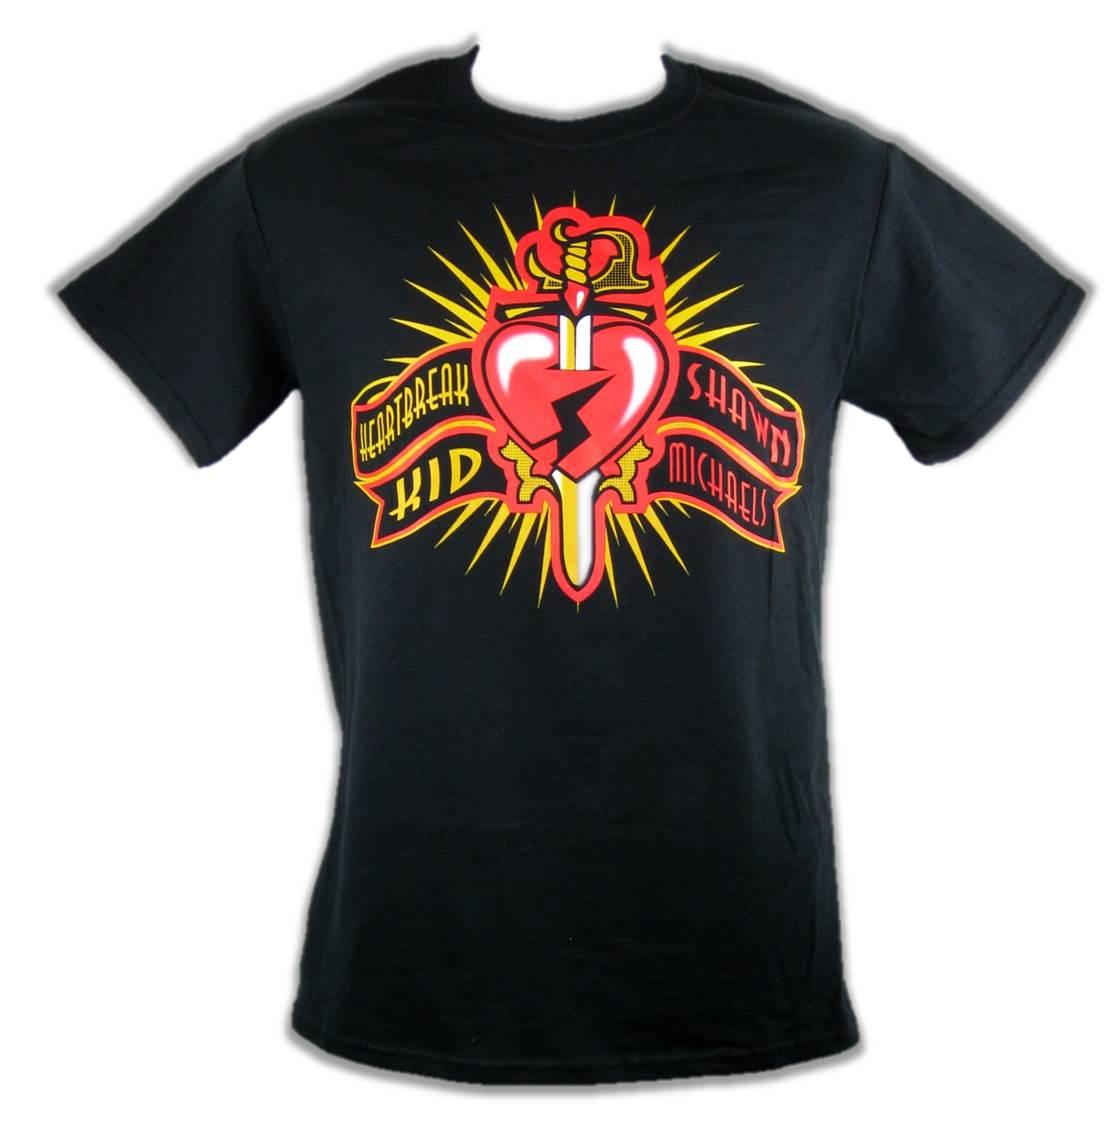 Black t shirt michaels -  Heartbreak Kid Black T Shirt